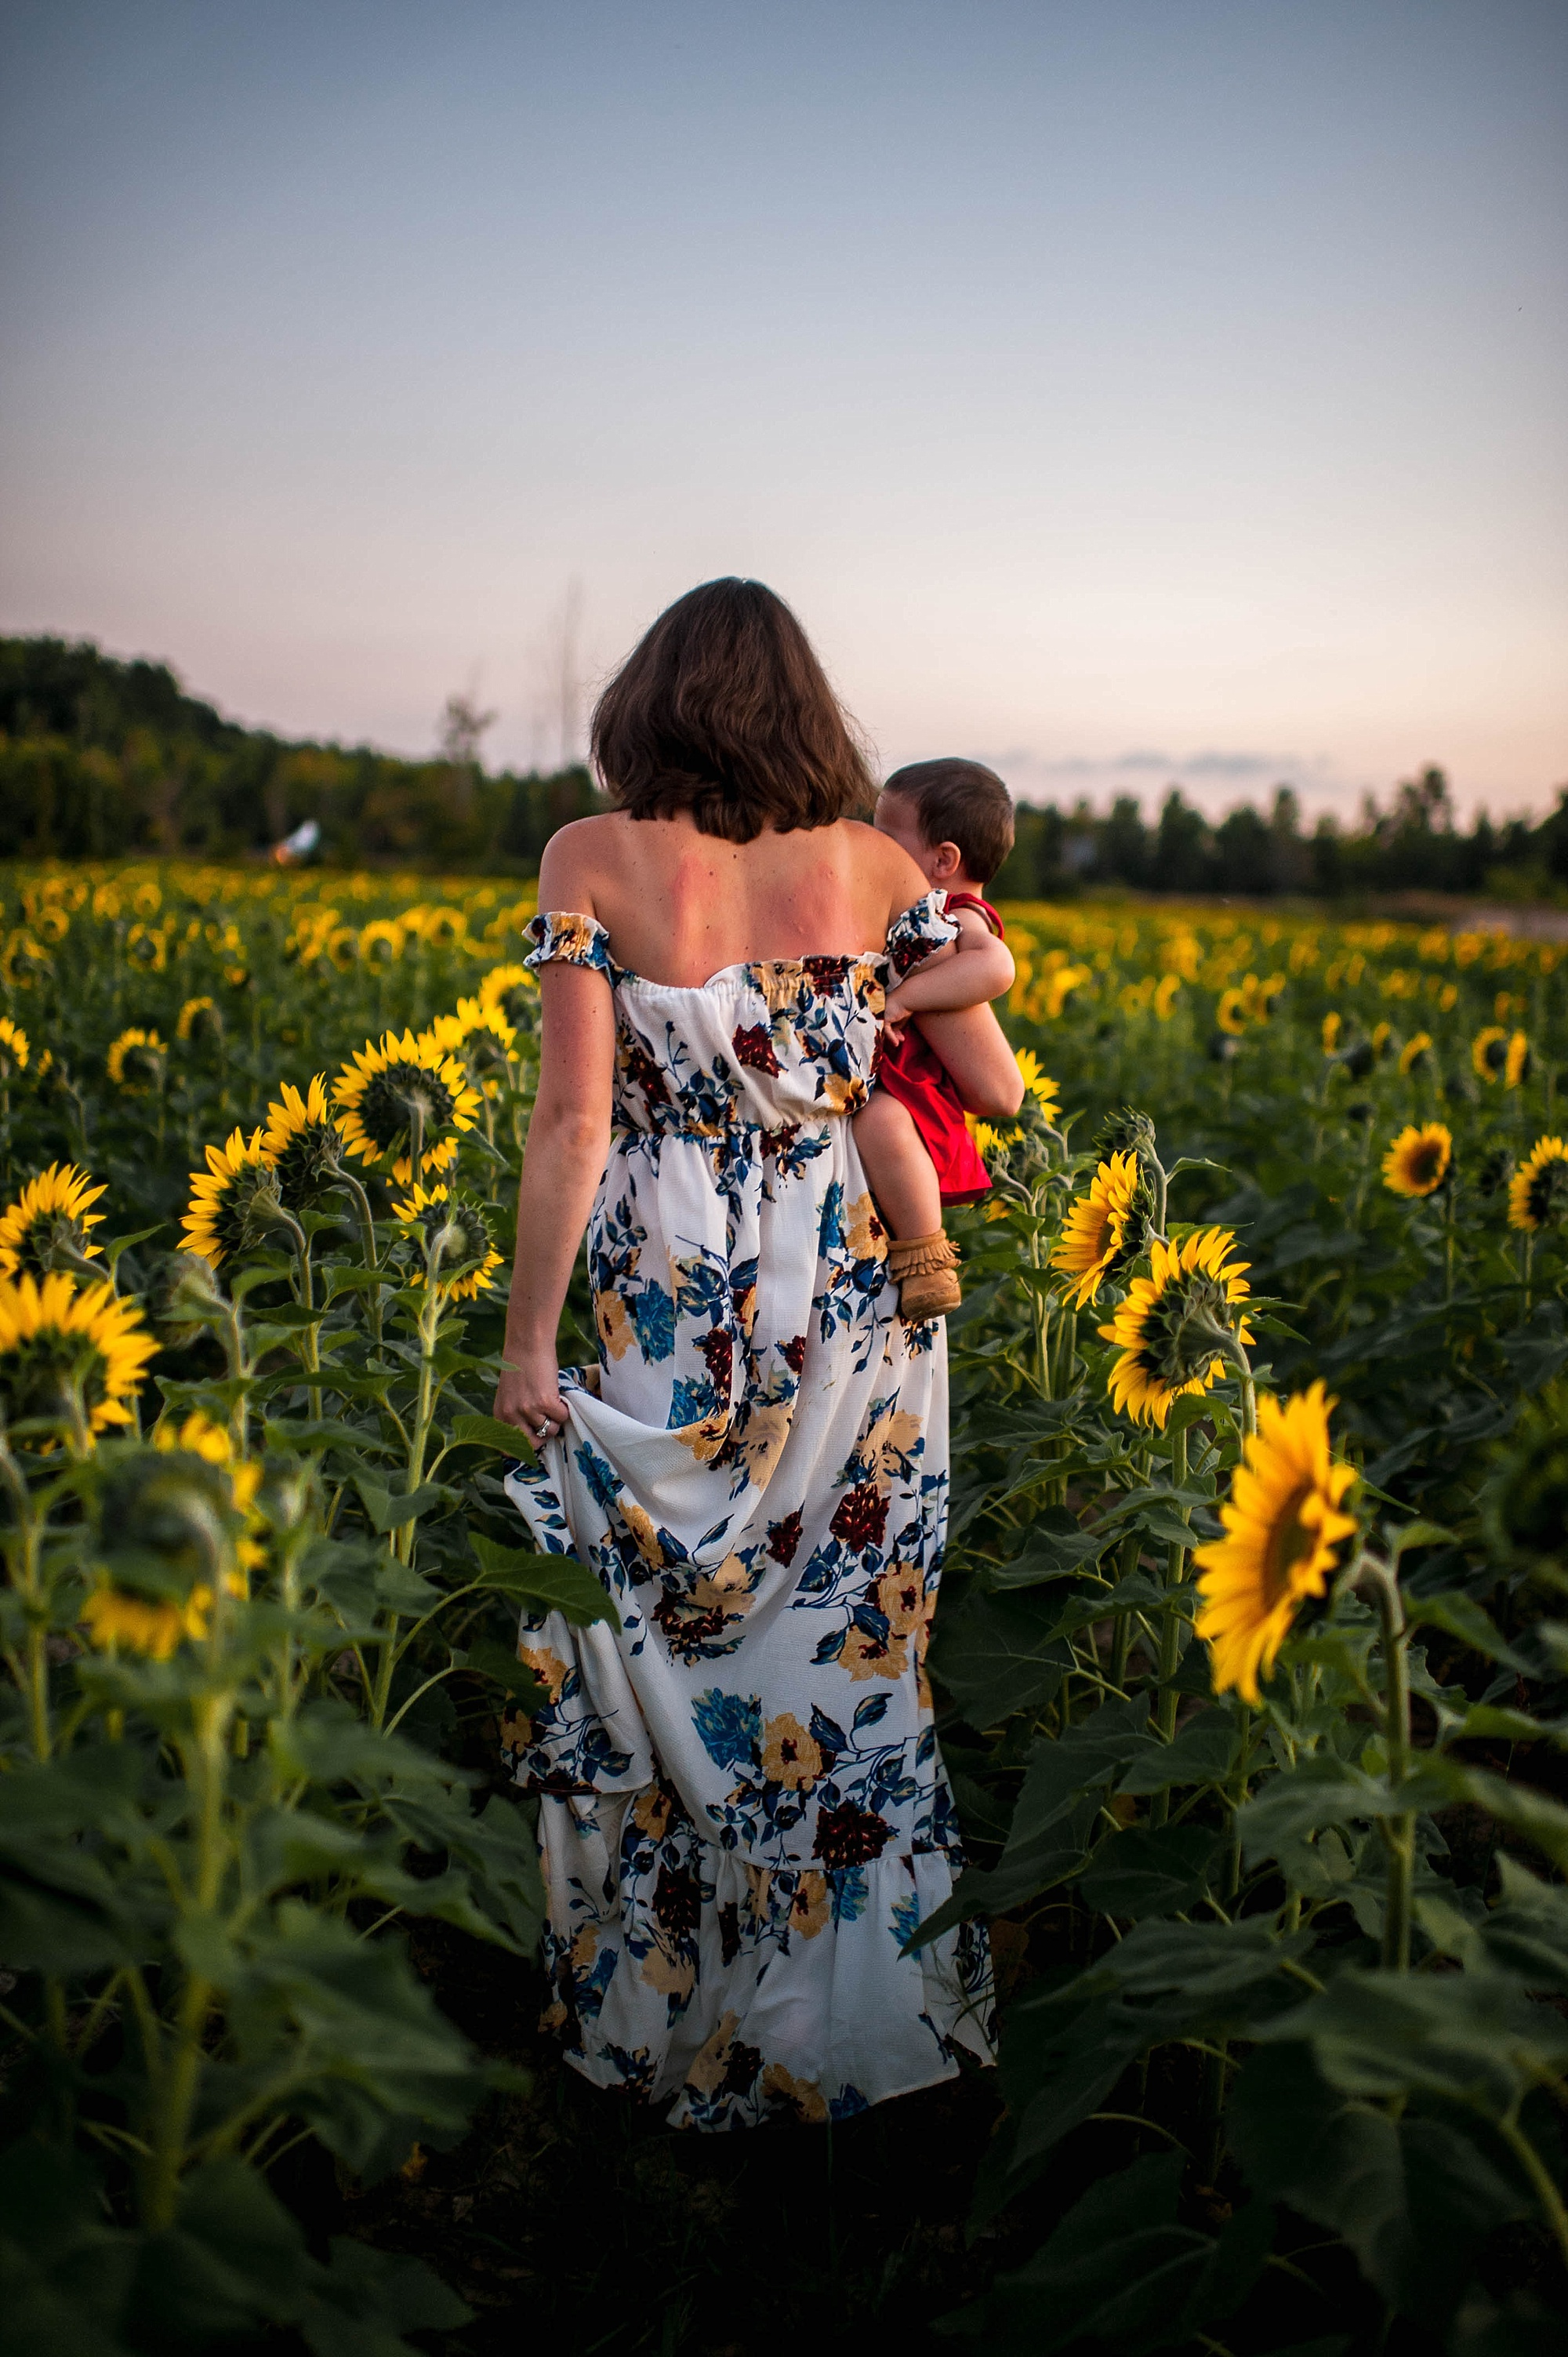 lauren-grayson-photography-cleveland-ohio-photographer-sunflower-fields-sunset-golden-hour-photo-shoot-mommy-and-me-family-child-photographer_0588.jpg